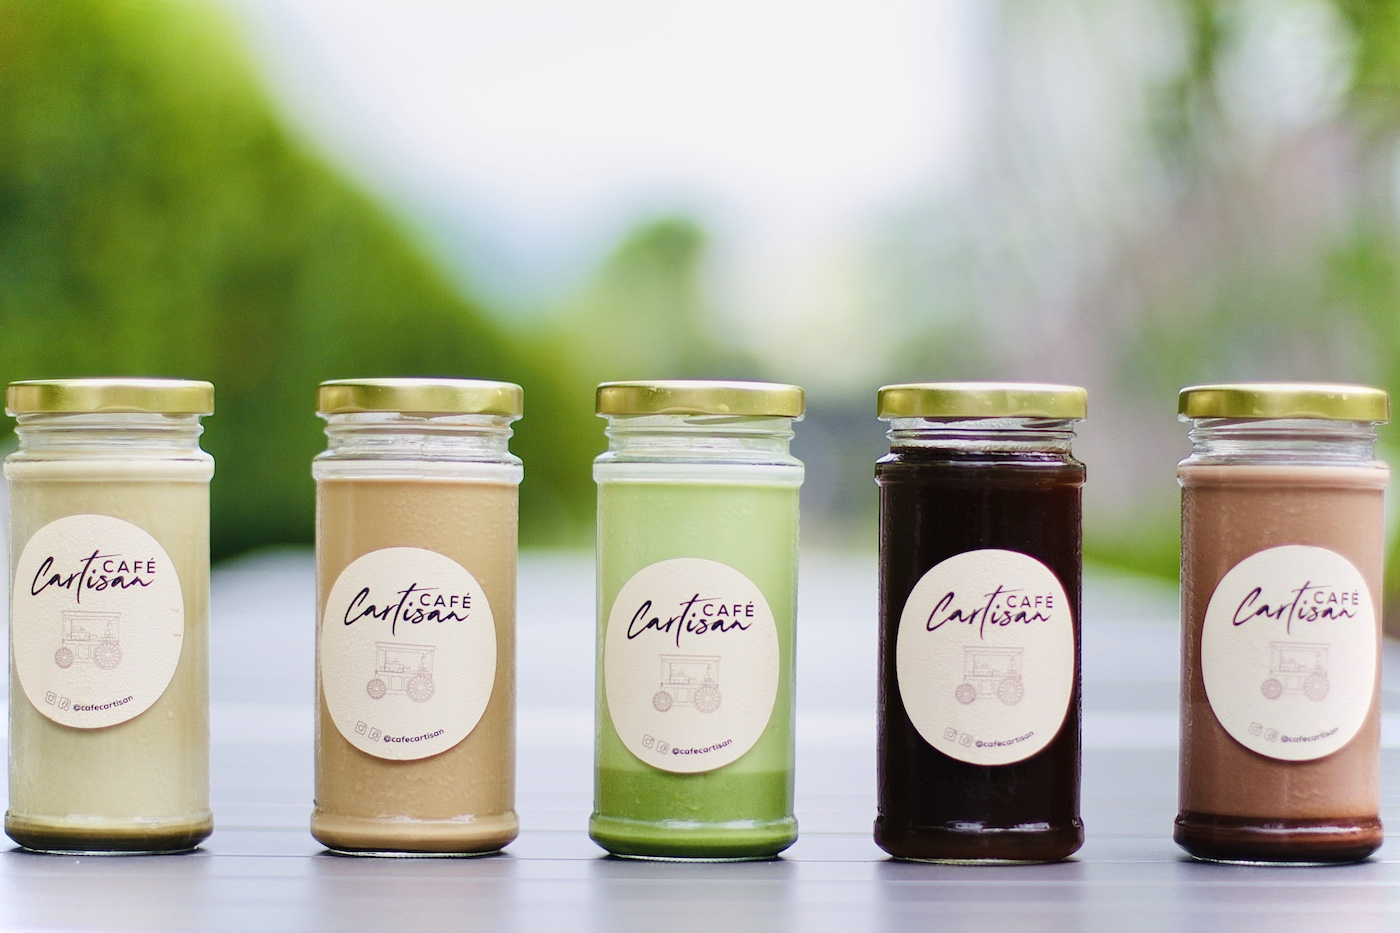 Cafe Cartisan: Cold brew delivery